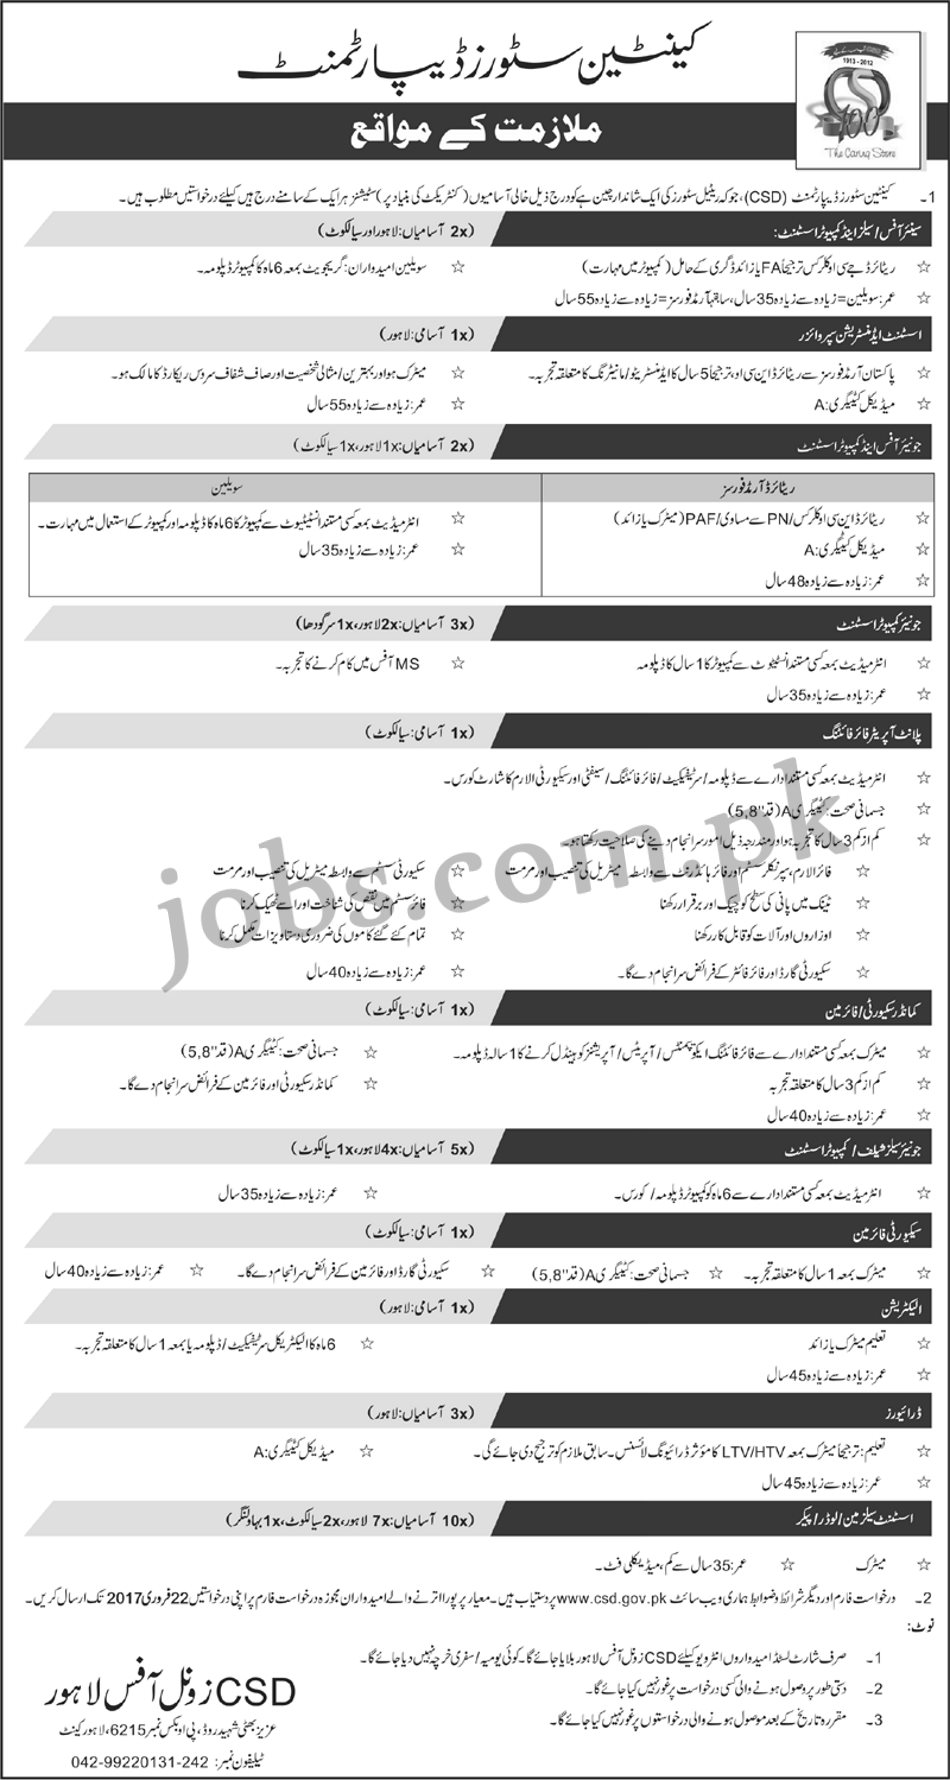 canteen stores department csd jobs available for  canteen stores department csd jobs 2017 available for 30 vacancies to be filled immediately required qualification from a recognized institution